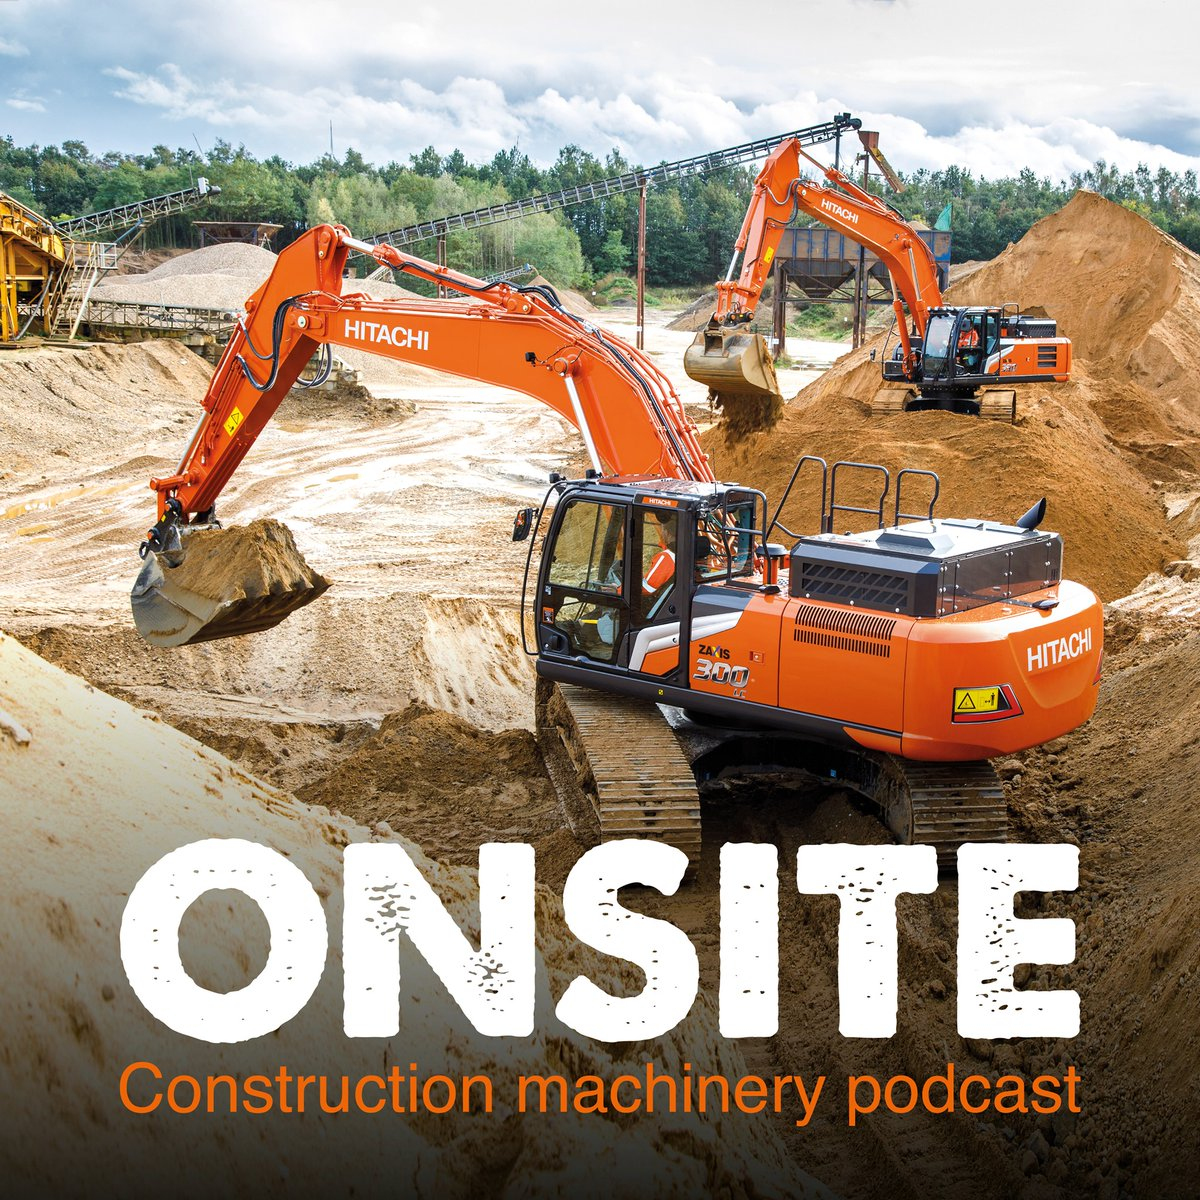 Listen to all four episodes of our new podcast Onsite – the construction machinery podcast on your favourite platforms by subscribing here: https://t.co/vi5TjCK1HG. https://t.co/x1oyH4W18E